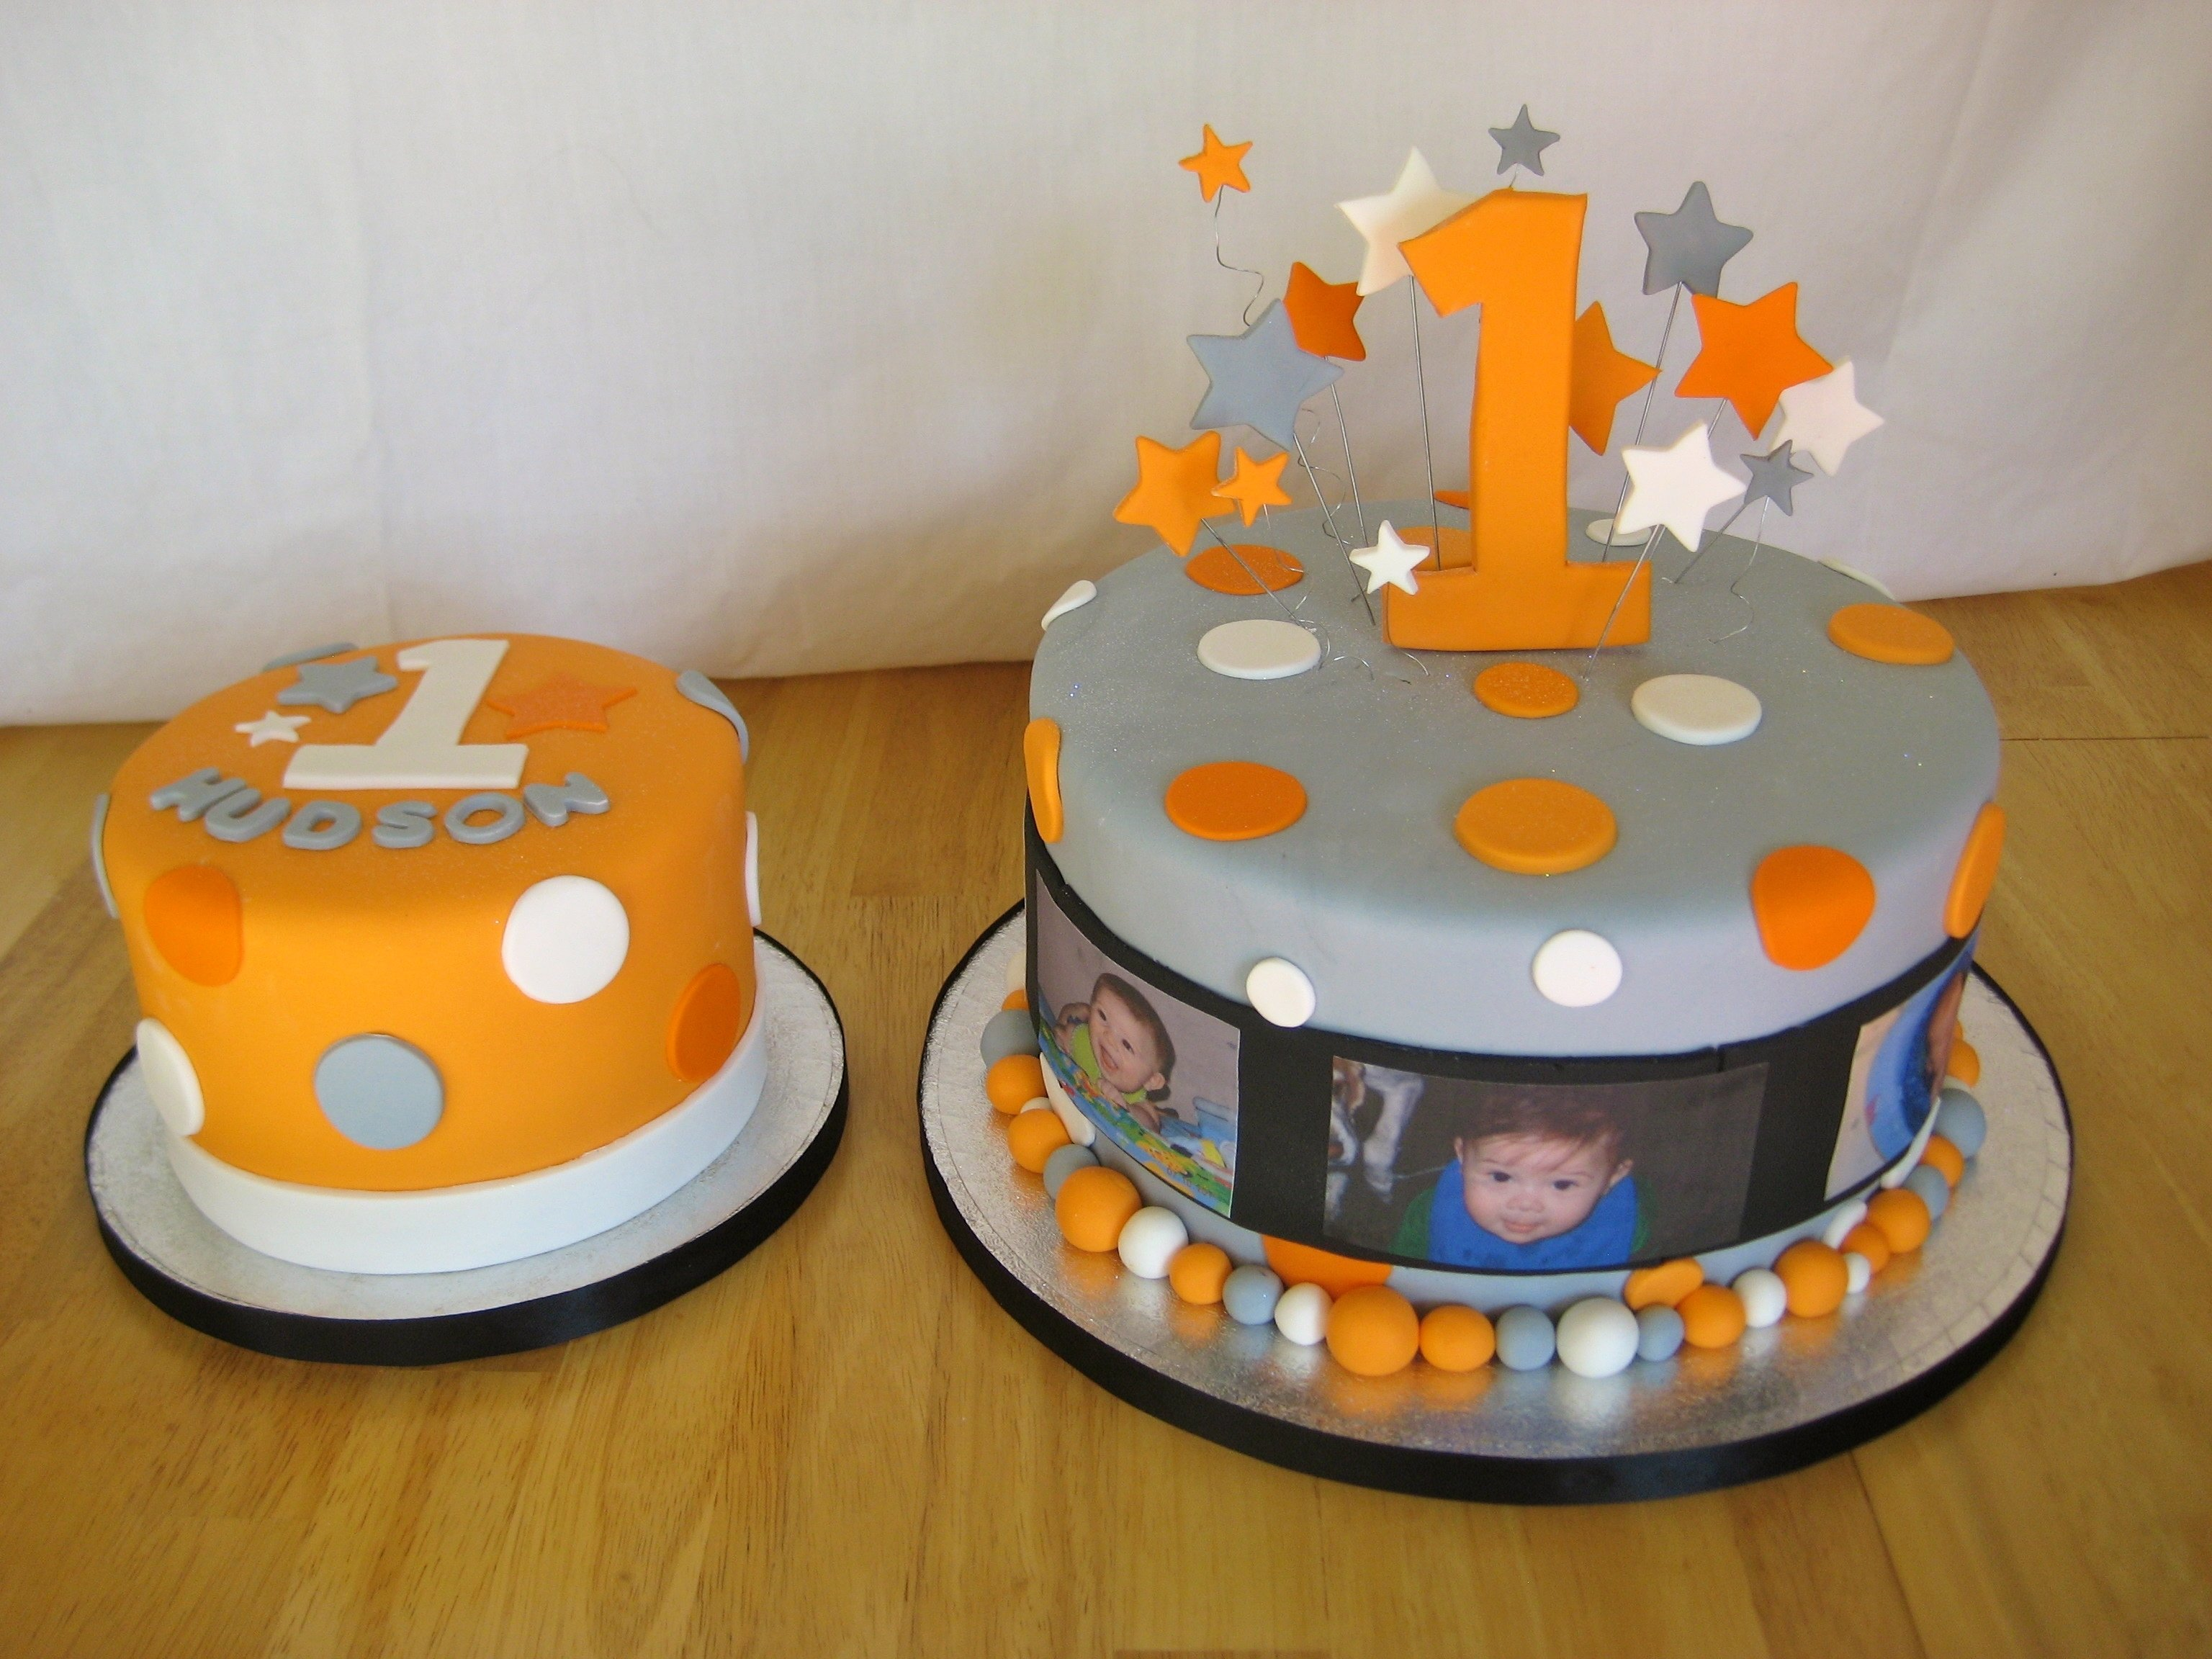 10 Lovable Birthday Ideas For A 1 Year Old one year old in a flash cake stars edible images and more big